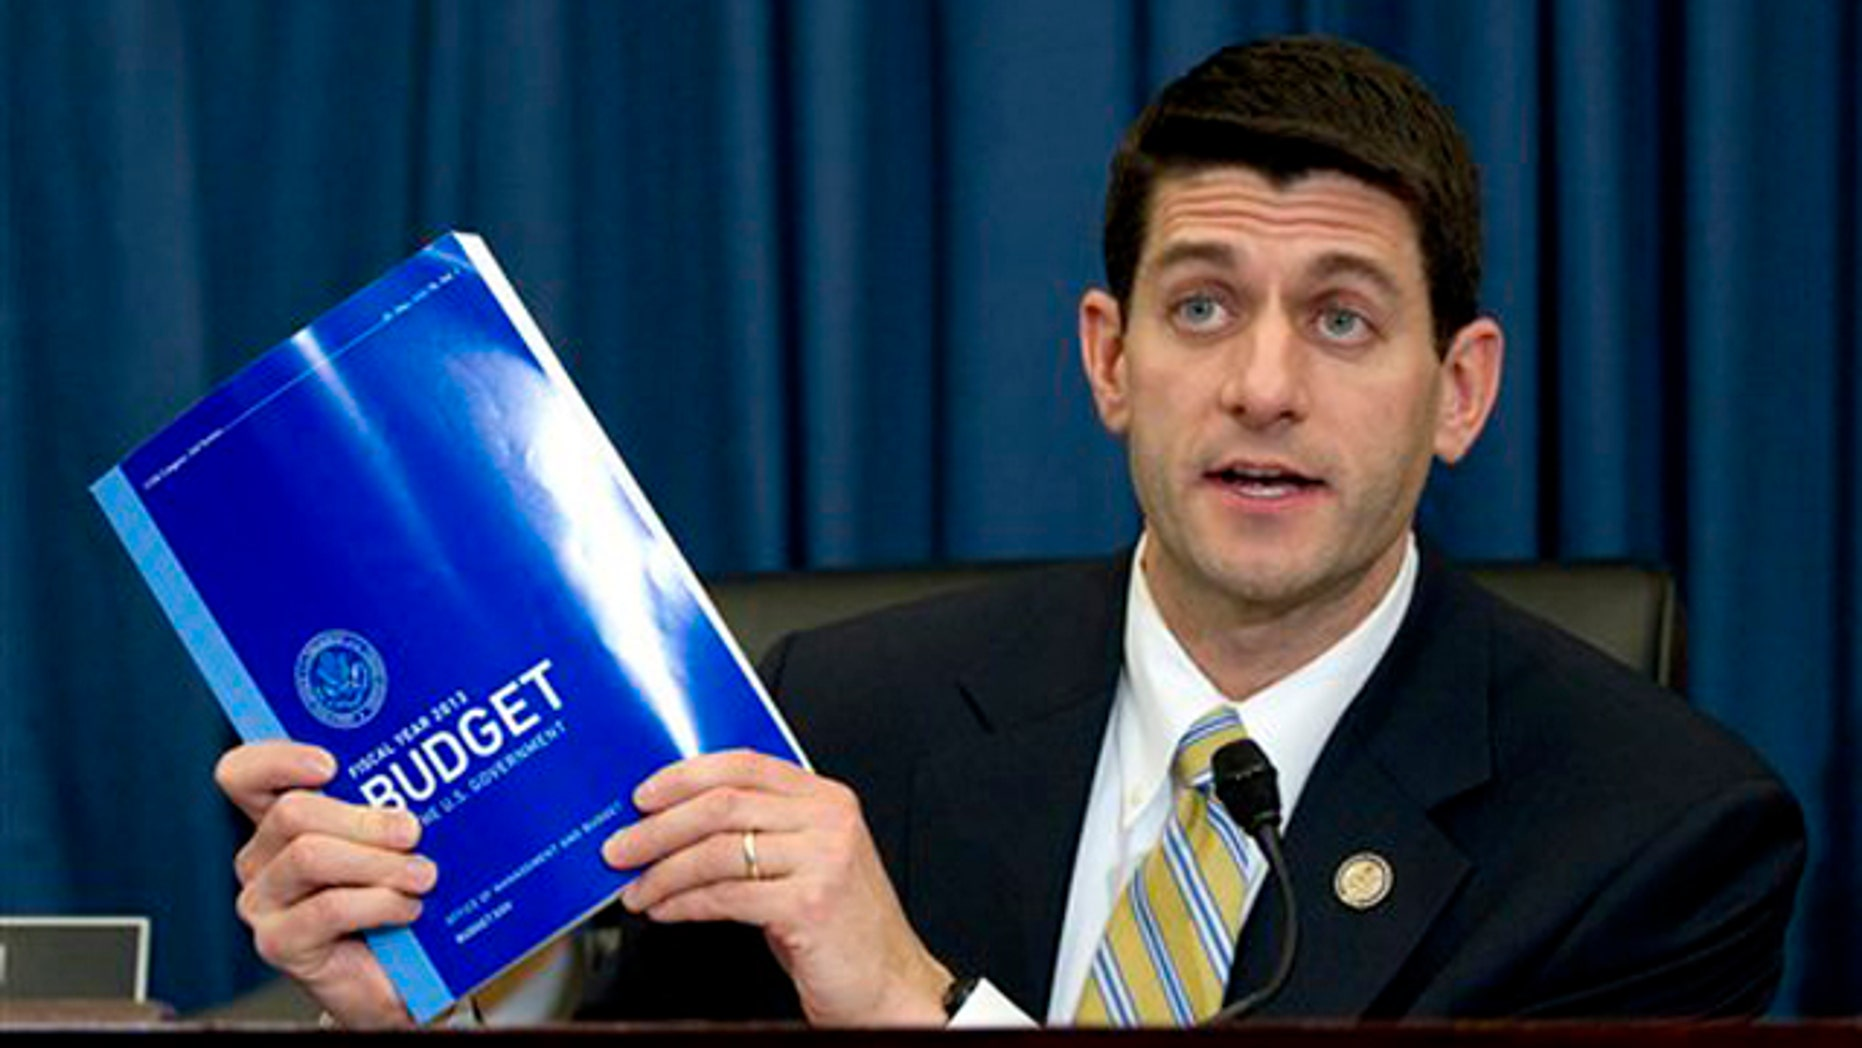 Feb. 16, 2012: House Budget Committee Chairman Rep. Paul Ryan holds up a copy of President Obama's fiscal 2013 federal budget during a hearing on Capitol Hill.